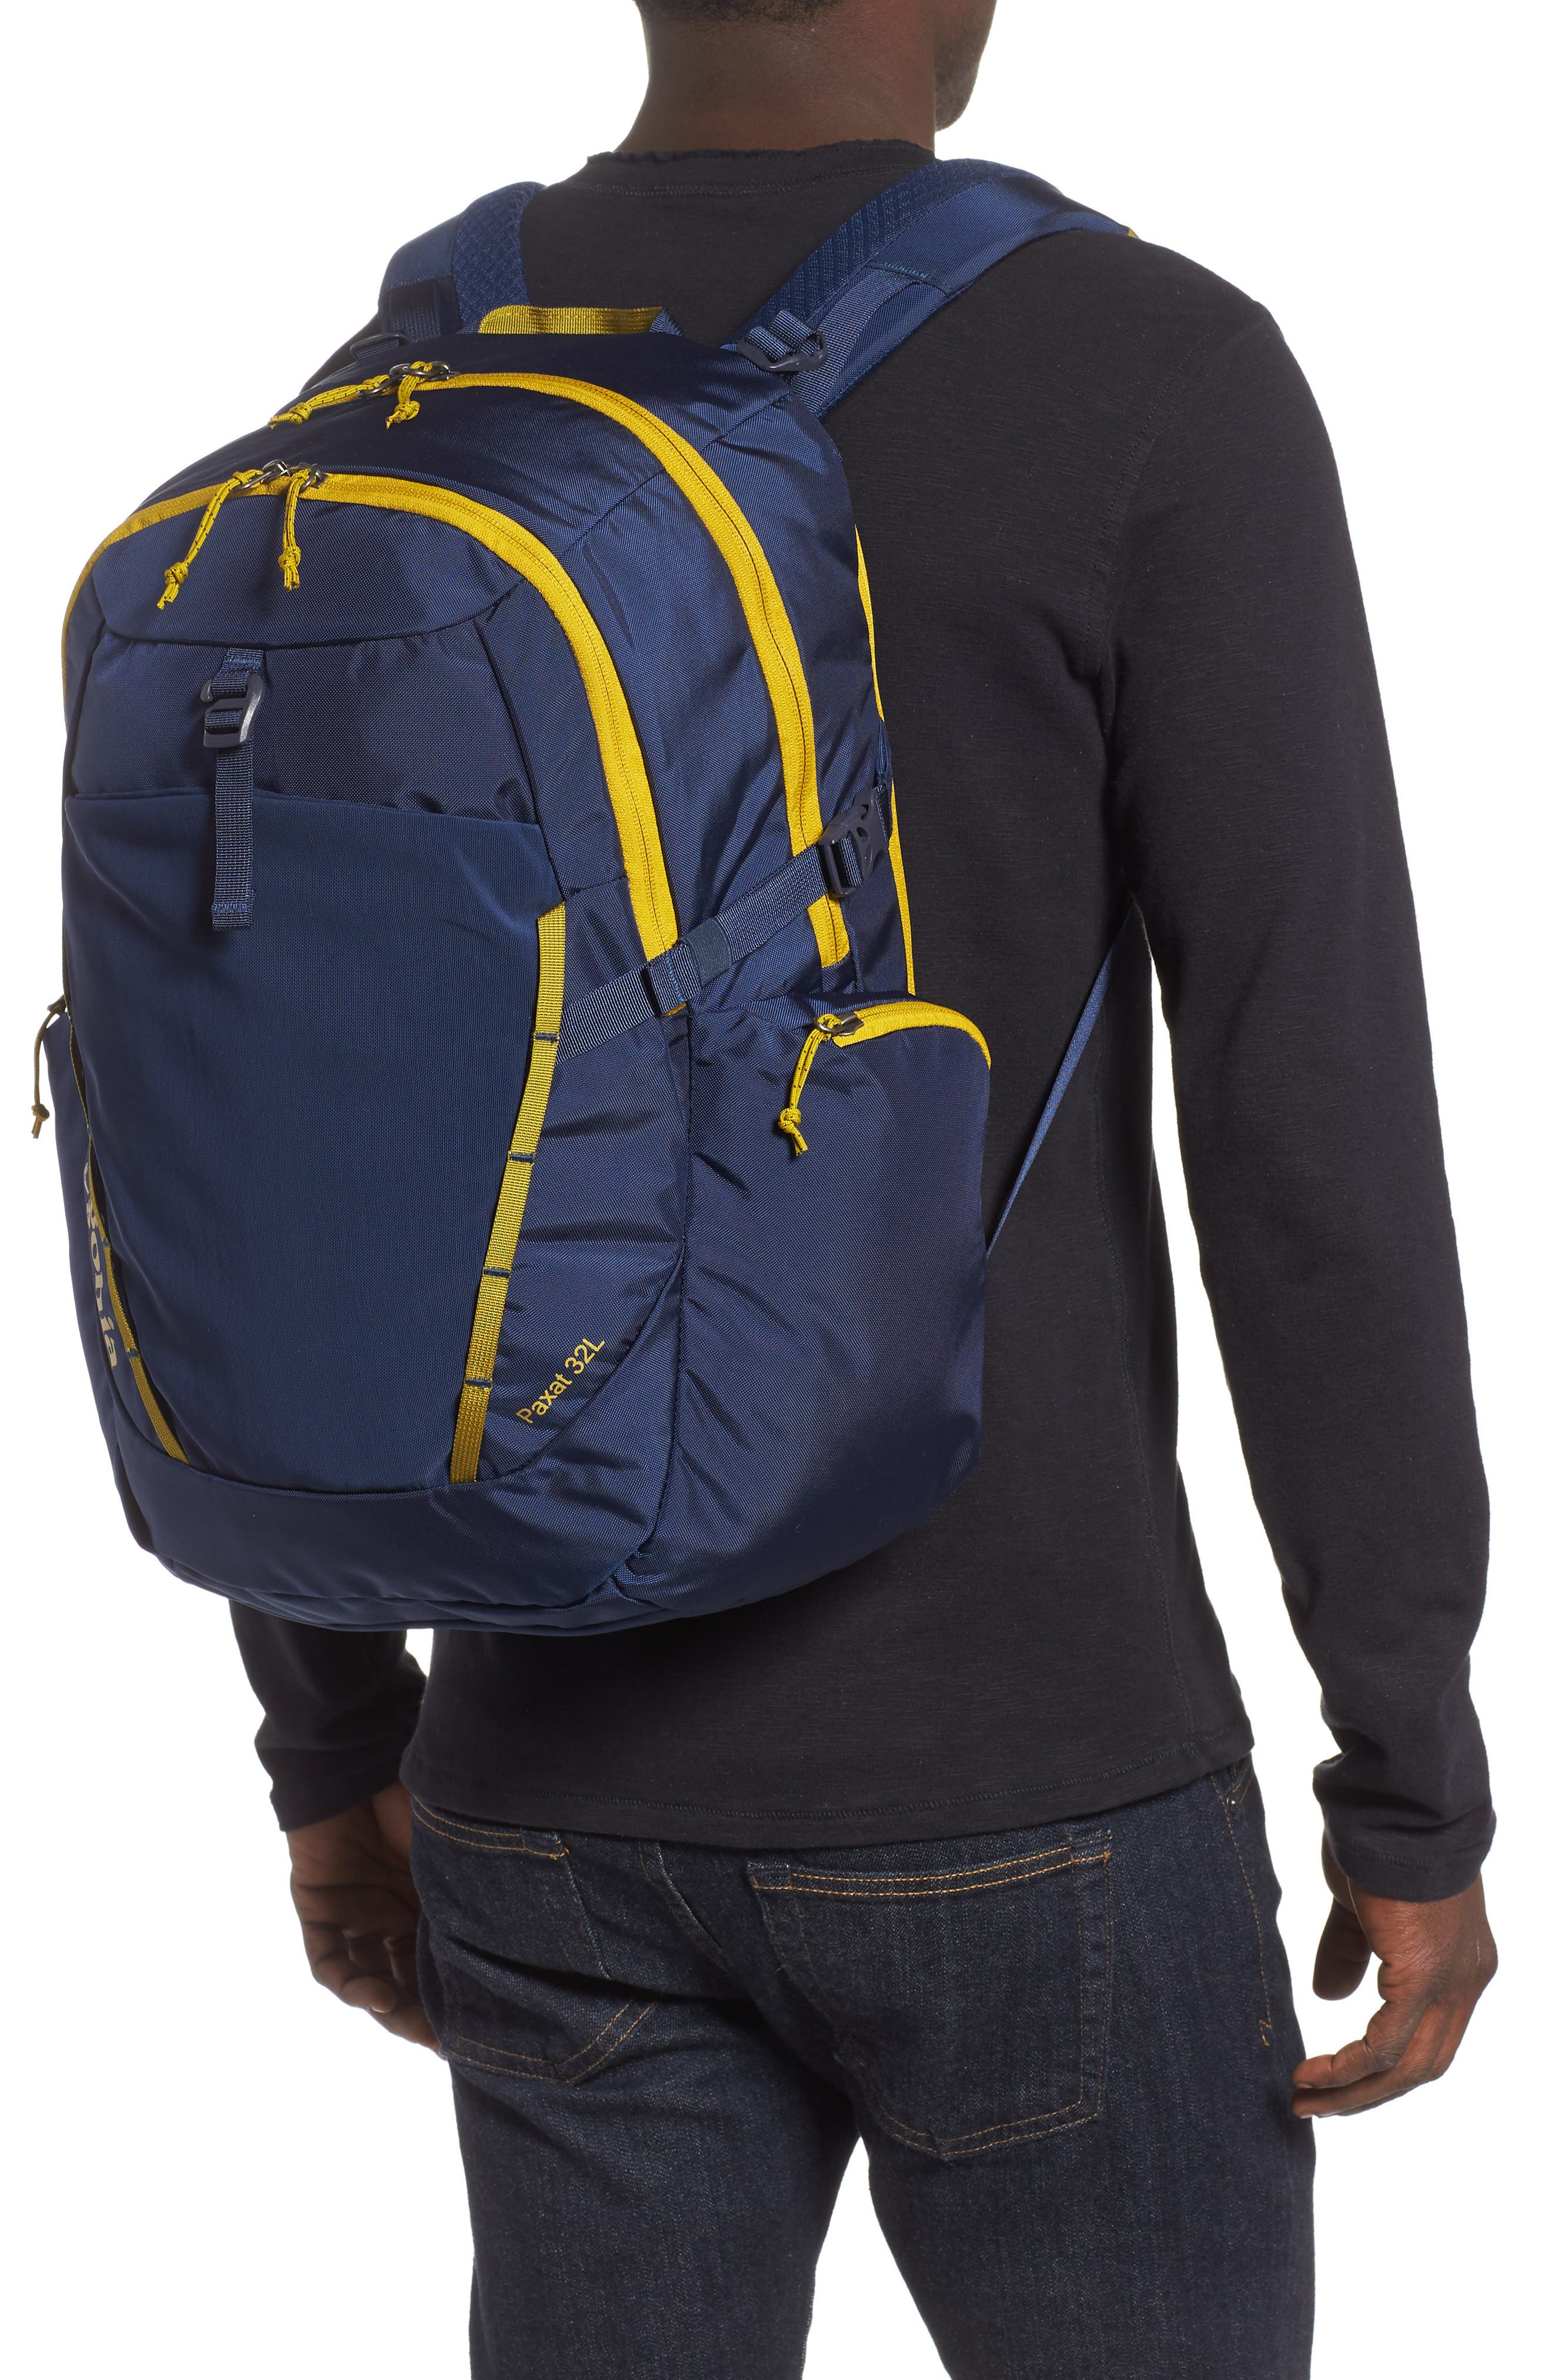 Paxat 32-Liter Backpack,                             Alternate thumbnail 2, color,                             CLASSIC NAVY